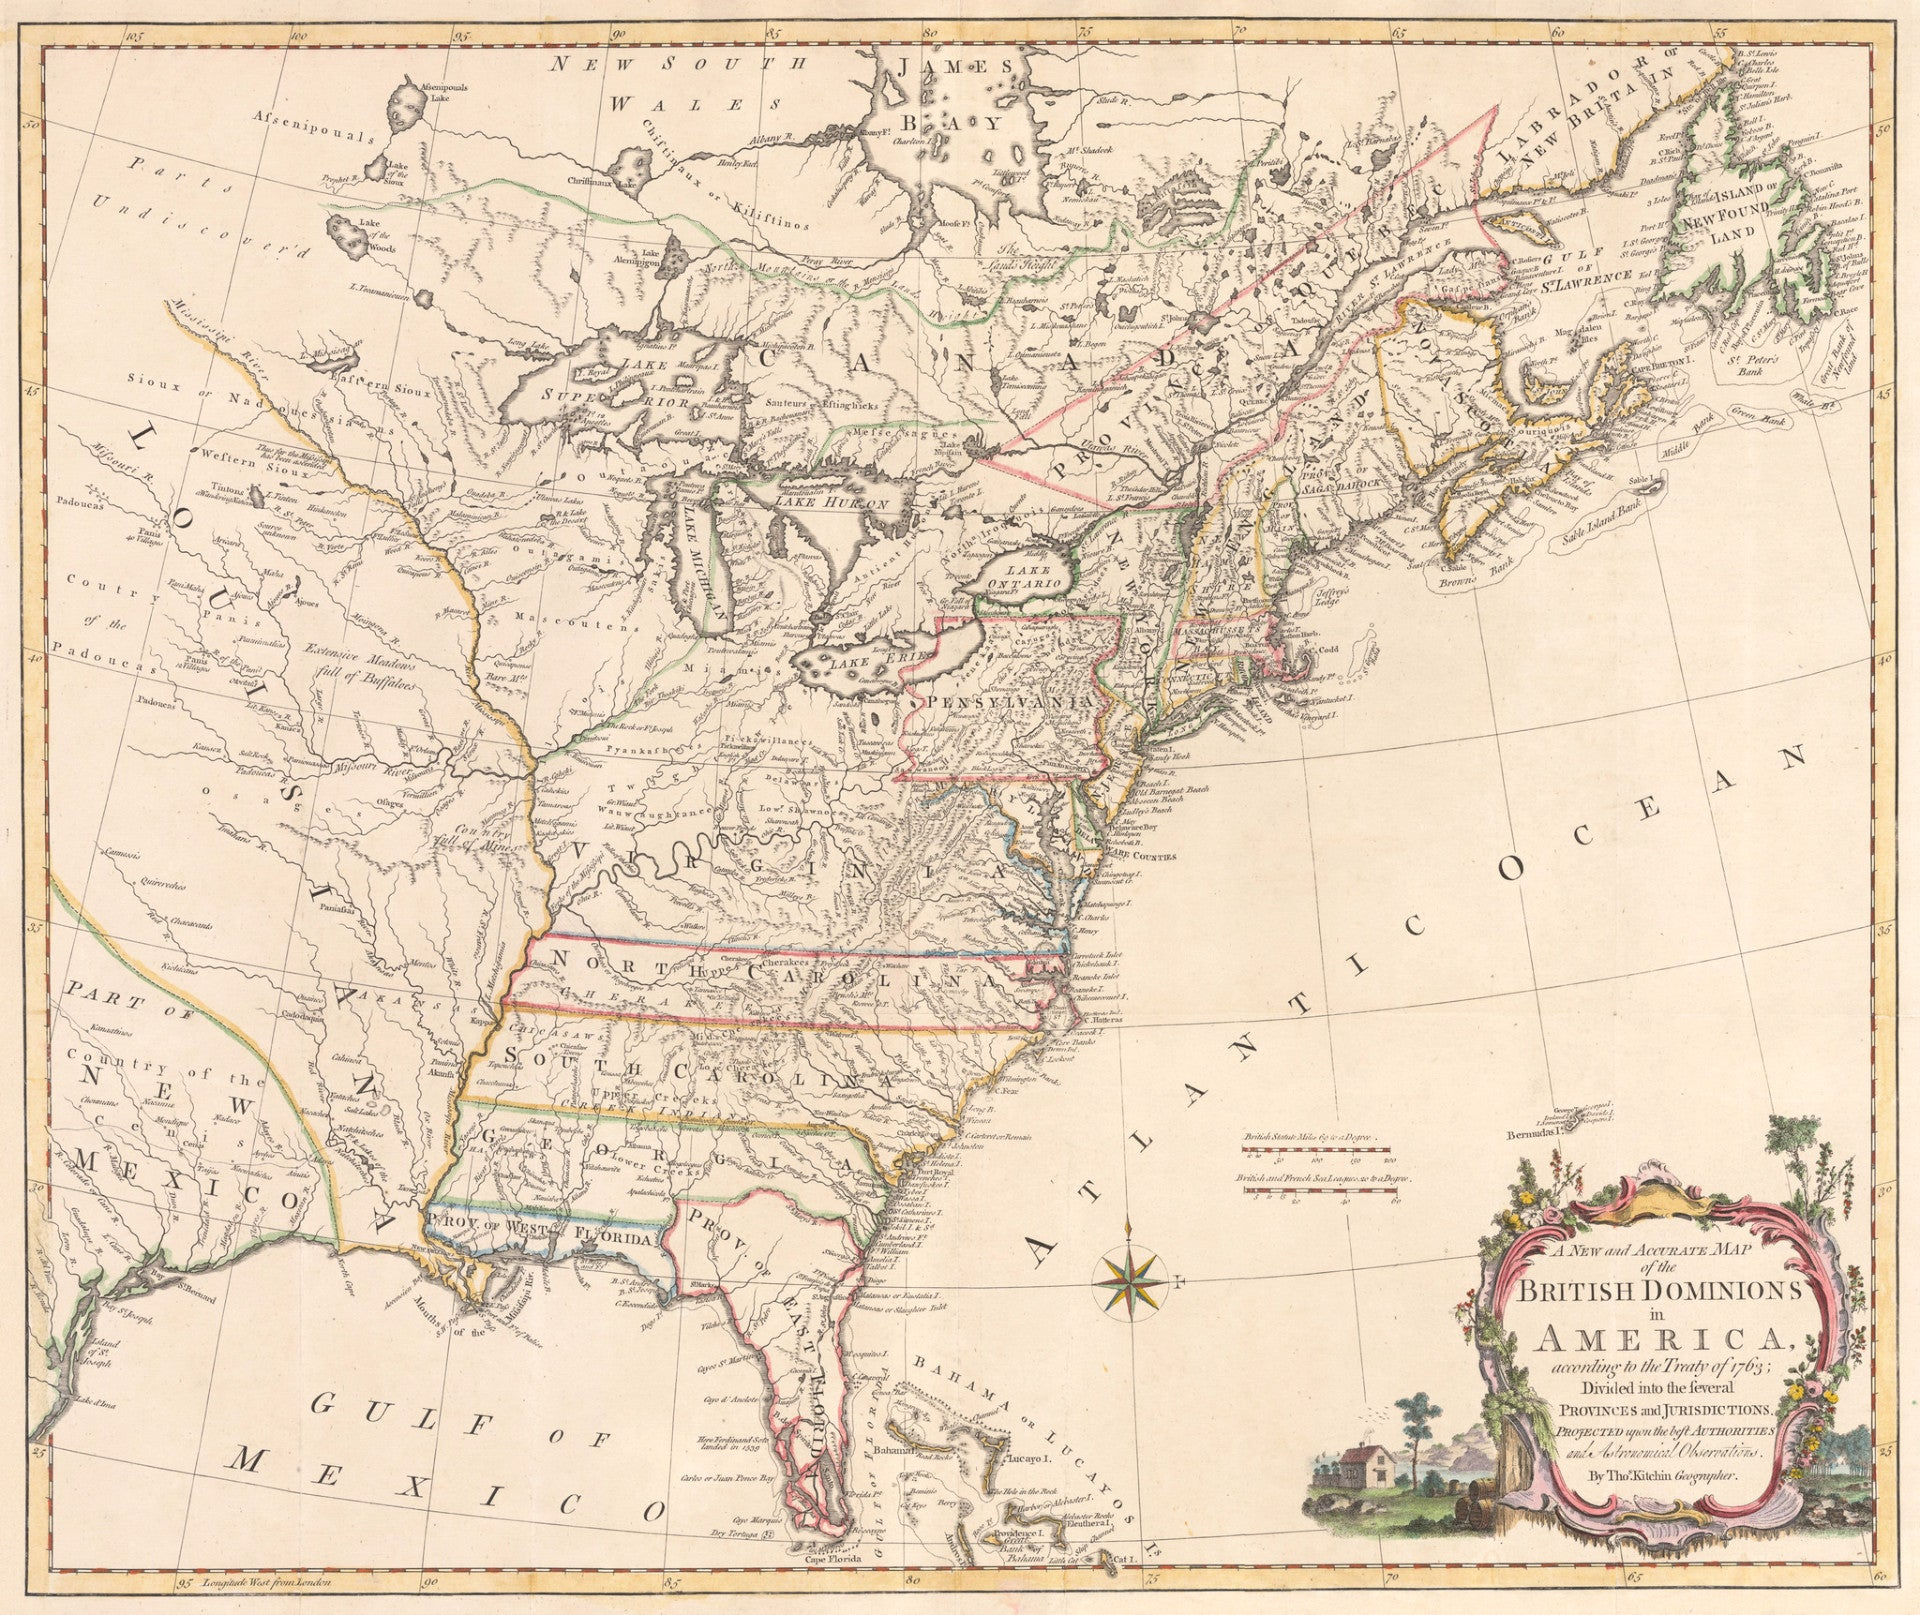 A New and Accurate Map of the British Dominions in America, according to the Treaty of 1763; Divided into the several Provinces and Jurisdictions. Projected upon the best Authorities and Astronomical Observations.